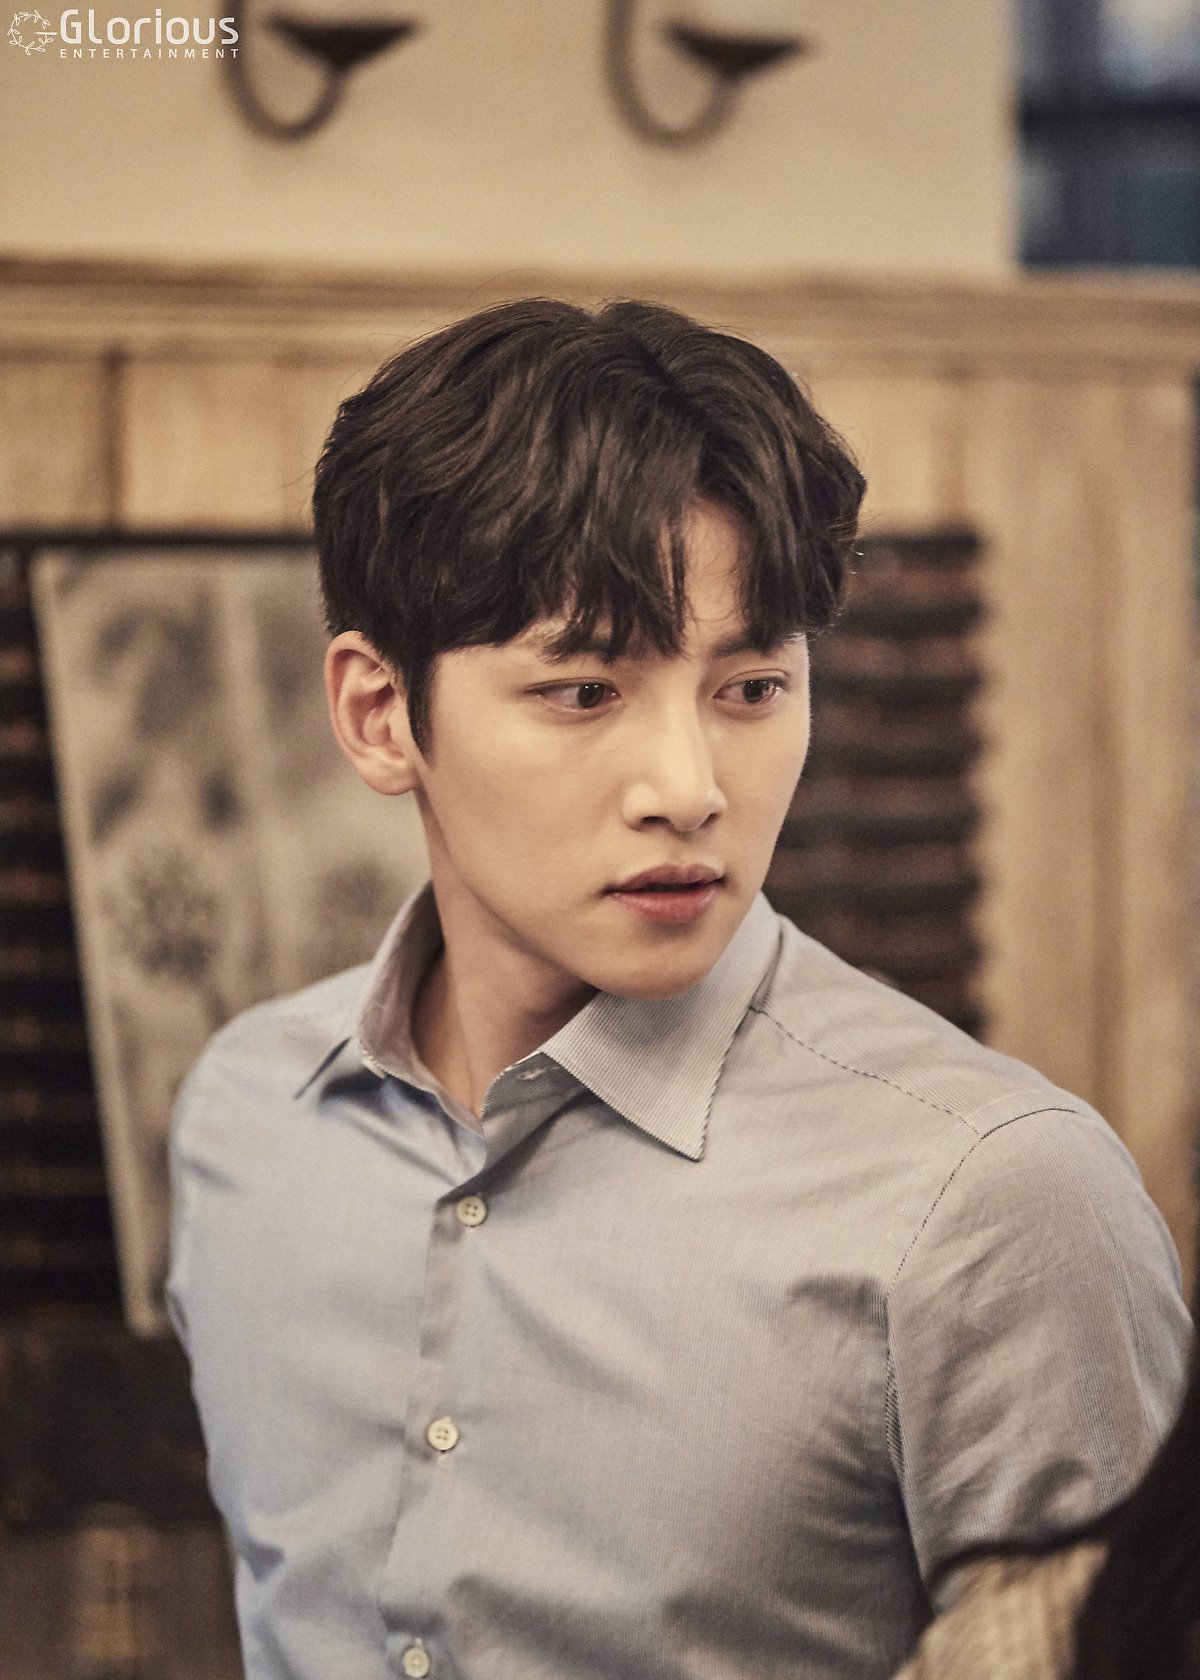 Drama Ji Chang Wook Reveals His Suspicious House Life